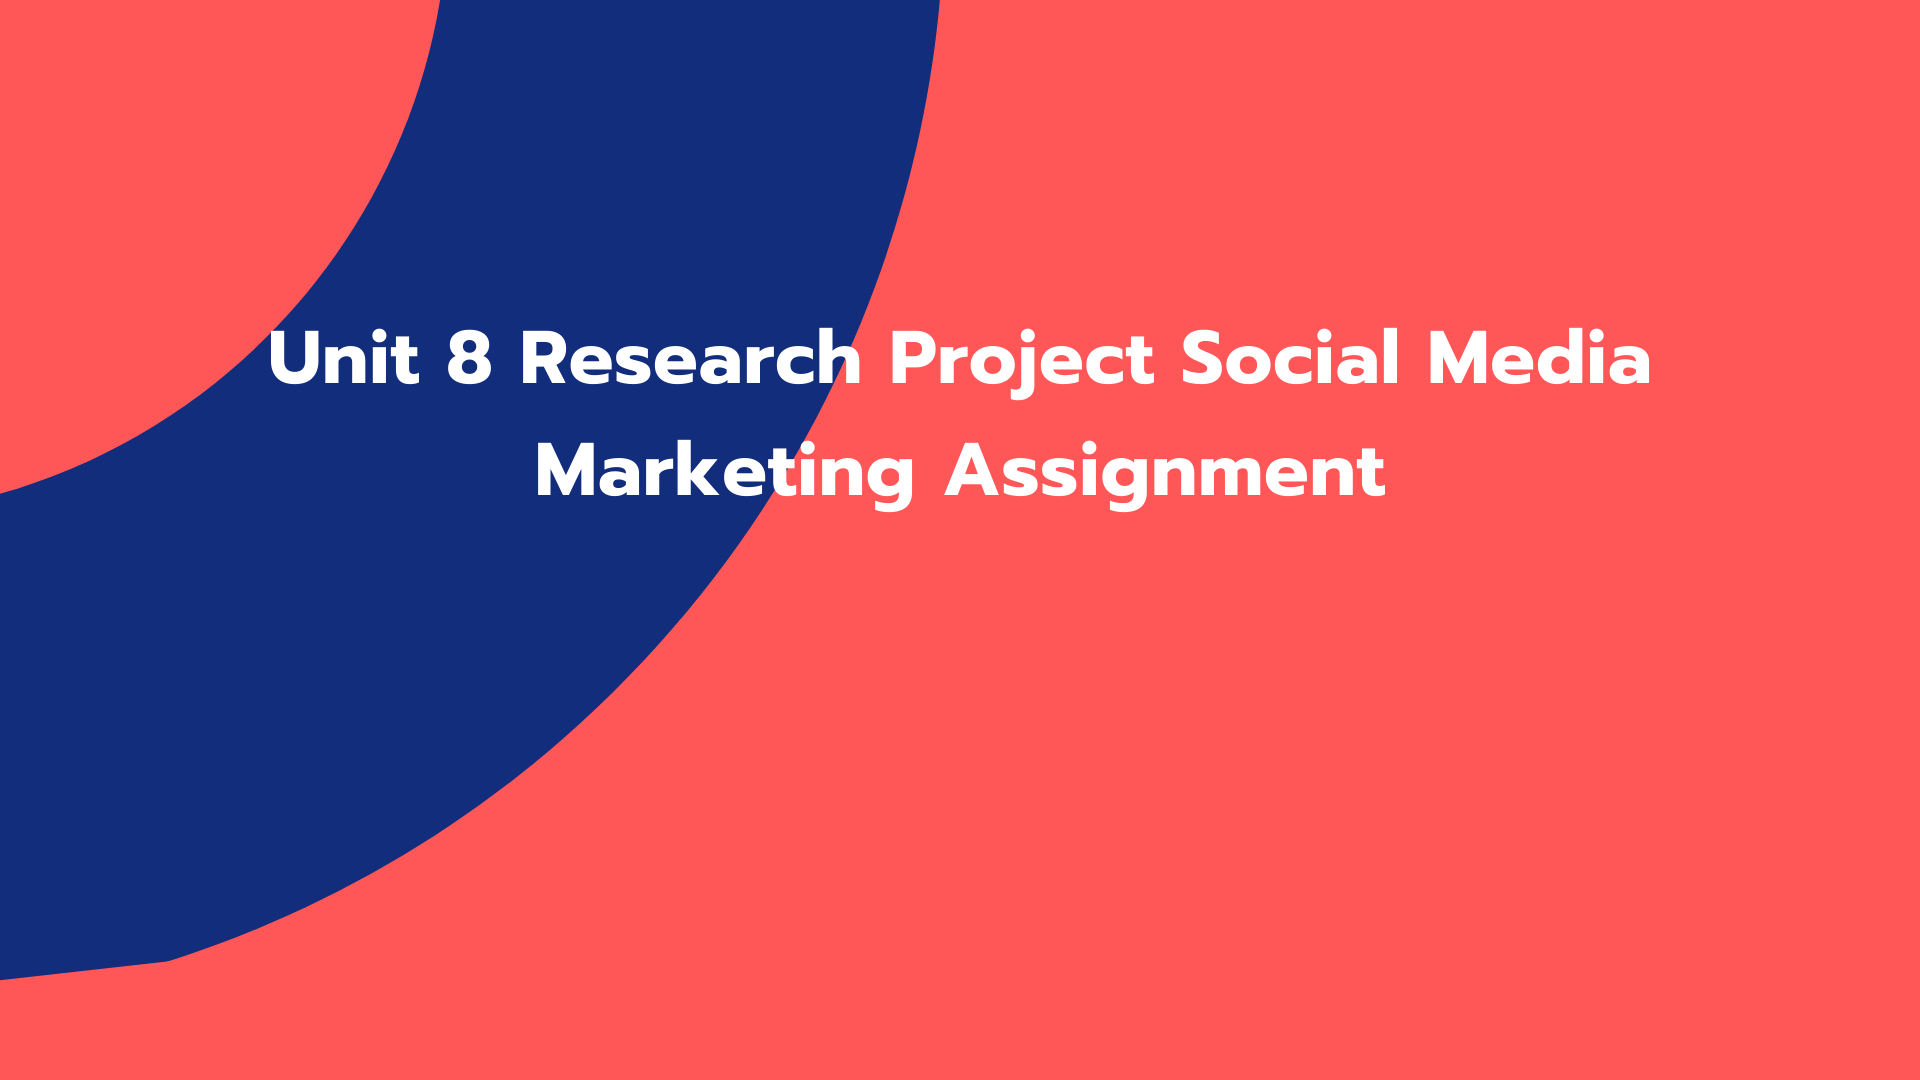 Unit 8 Research Project Social Media Marketing Assignment